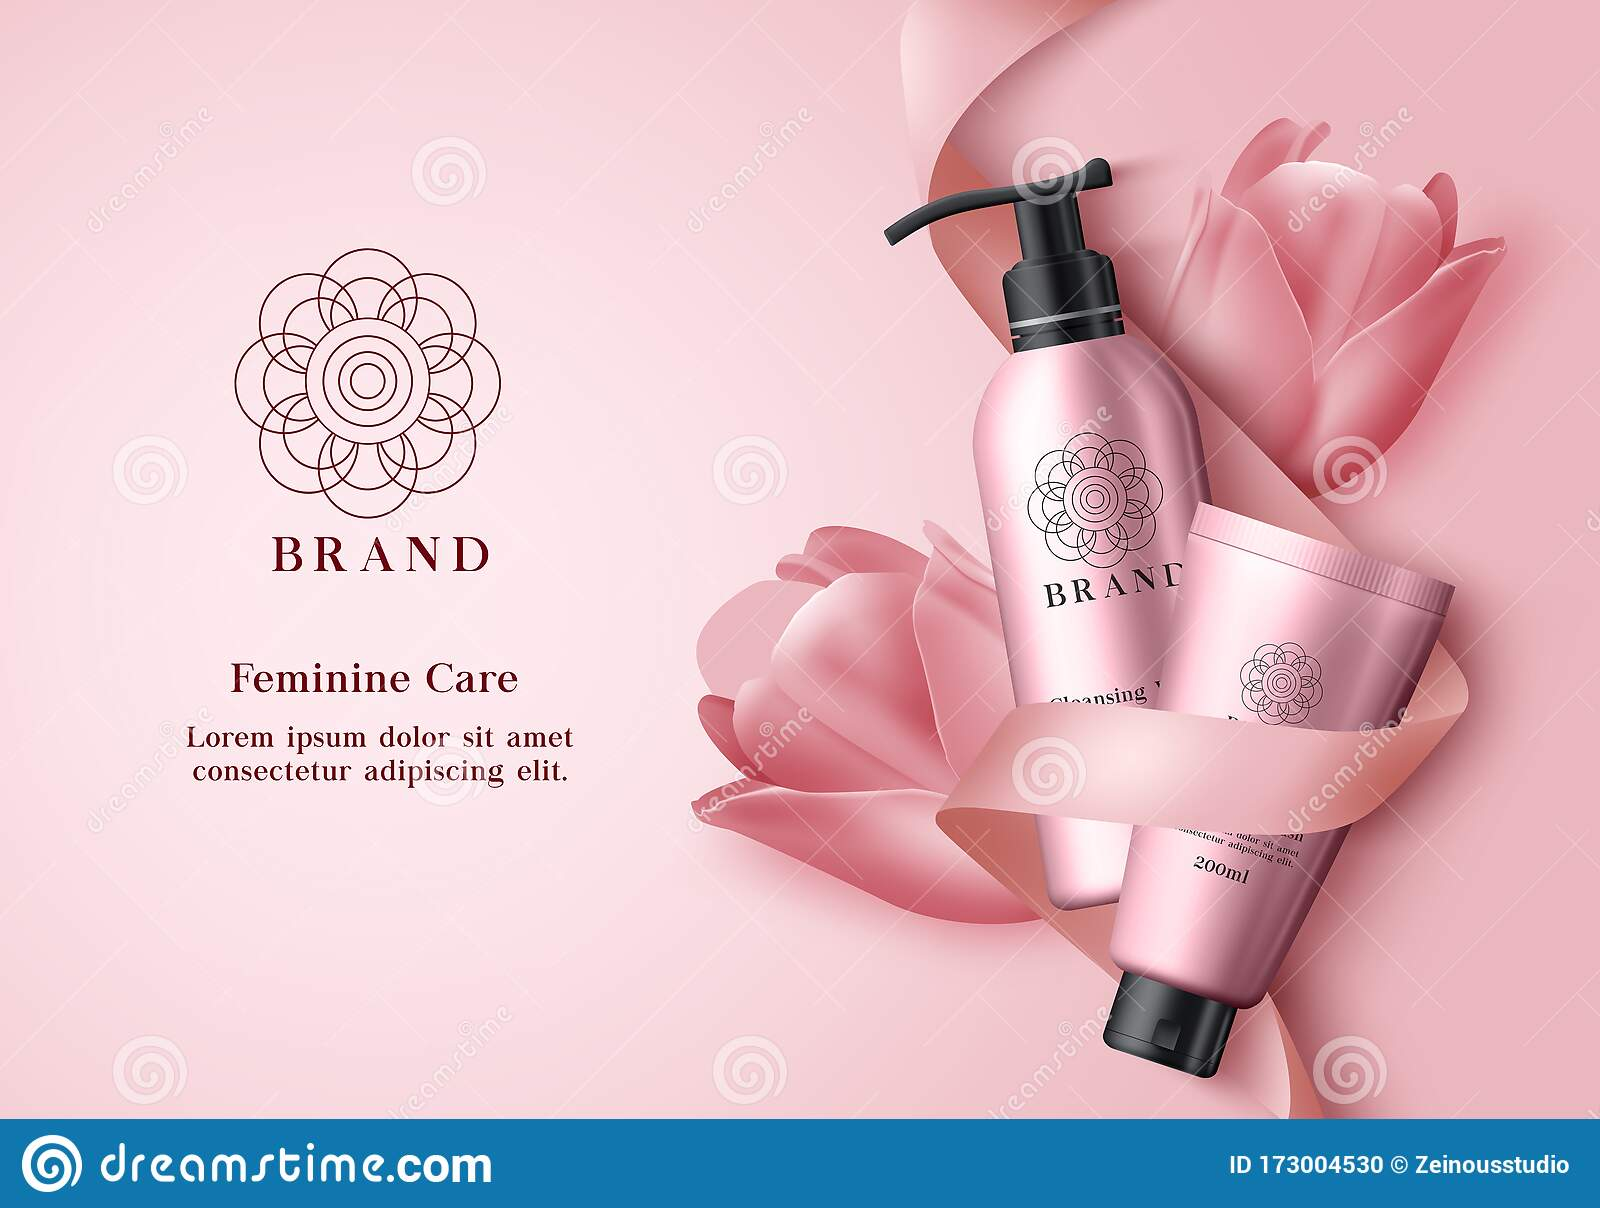 Banner Cosmetic Stock Illustrations 24 644 Banner Cosmetic Stock Illustrations Vectors Clipart Dreamstime